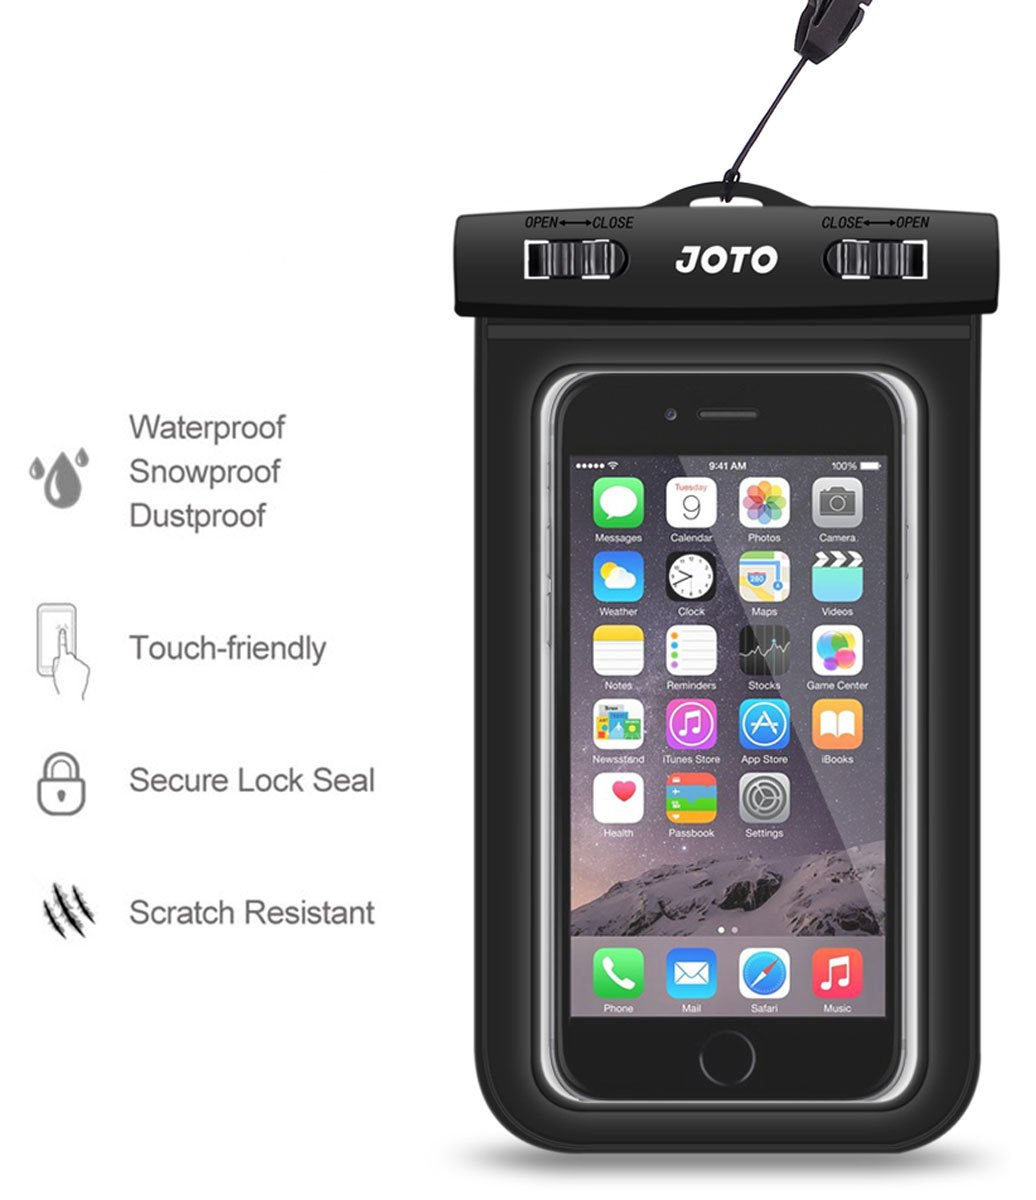 9277abe05fa Universal Waterproof Case, JOTO CellPhone Dry Bag Pouch for Apple iPhone  6S, 6, 6S Plus, SE, 5S, Samsung Galaxy S7, S6 Note